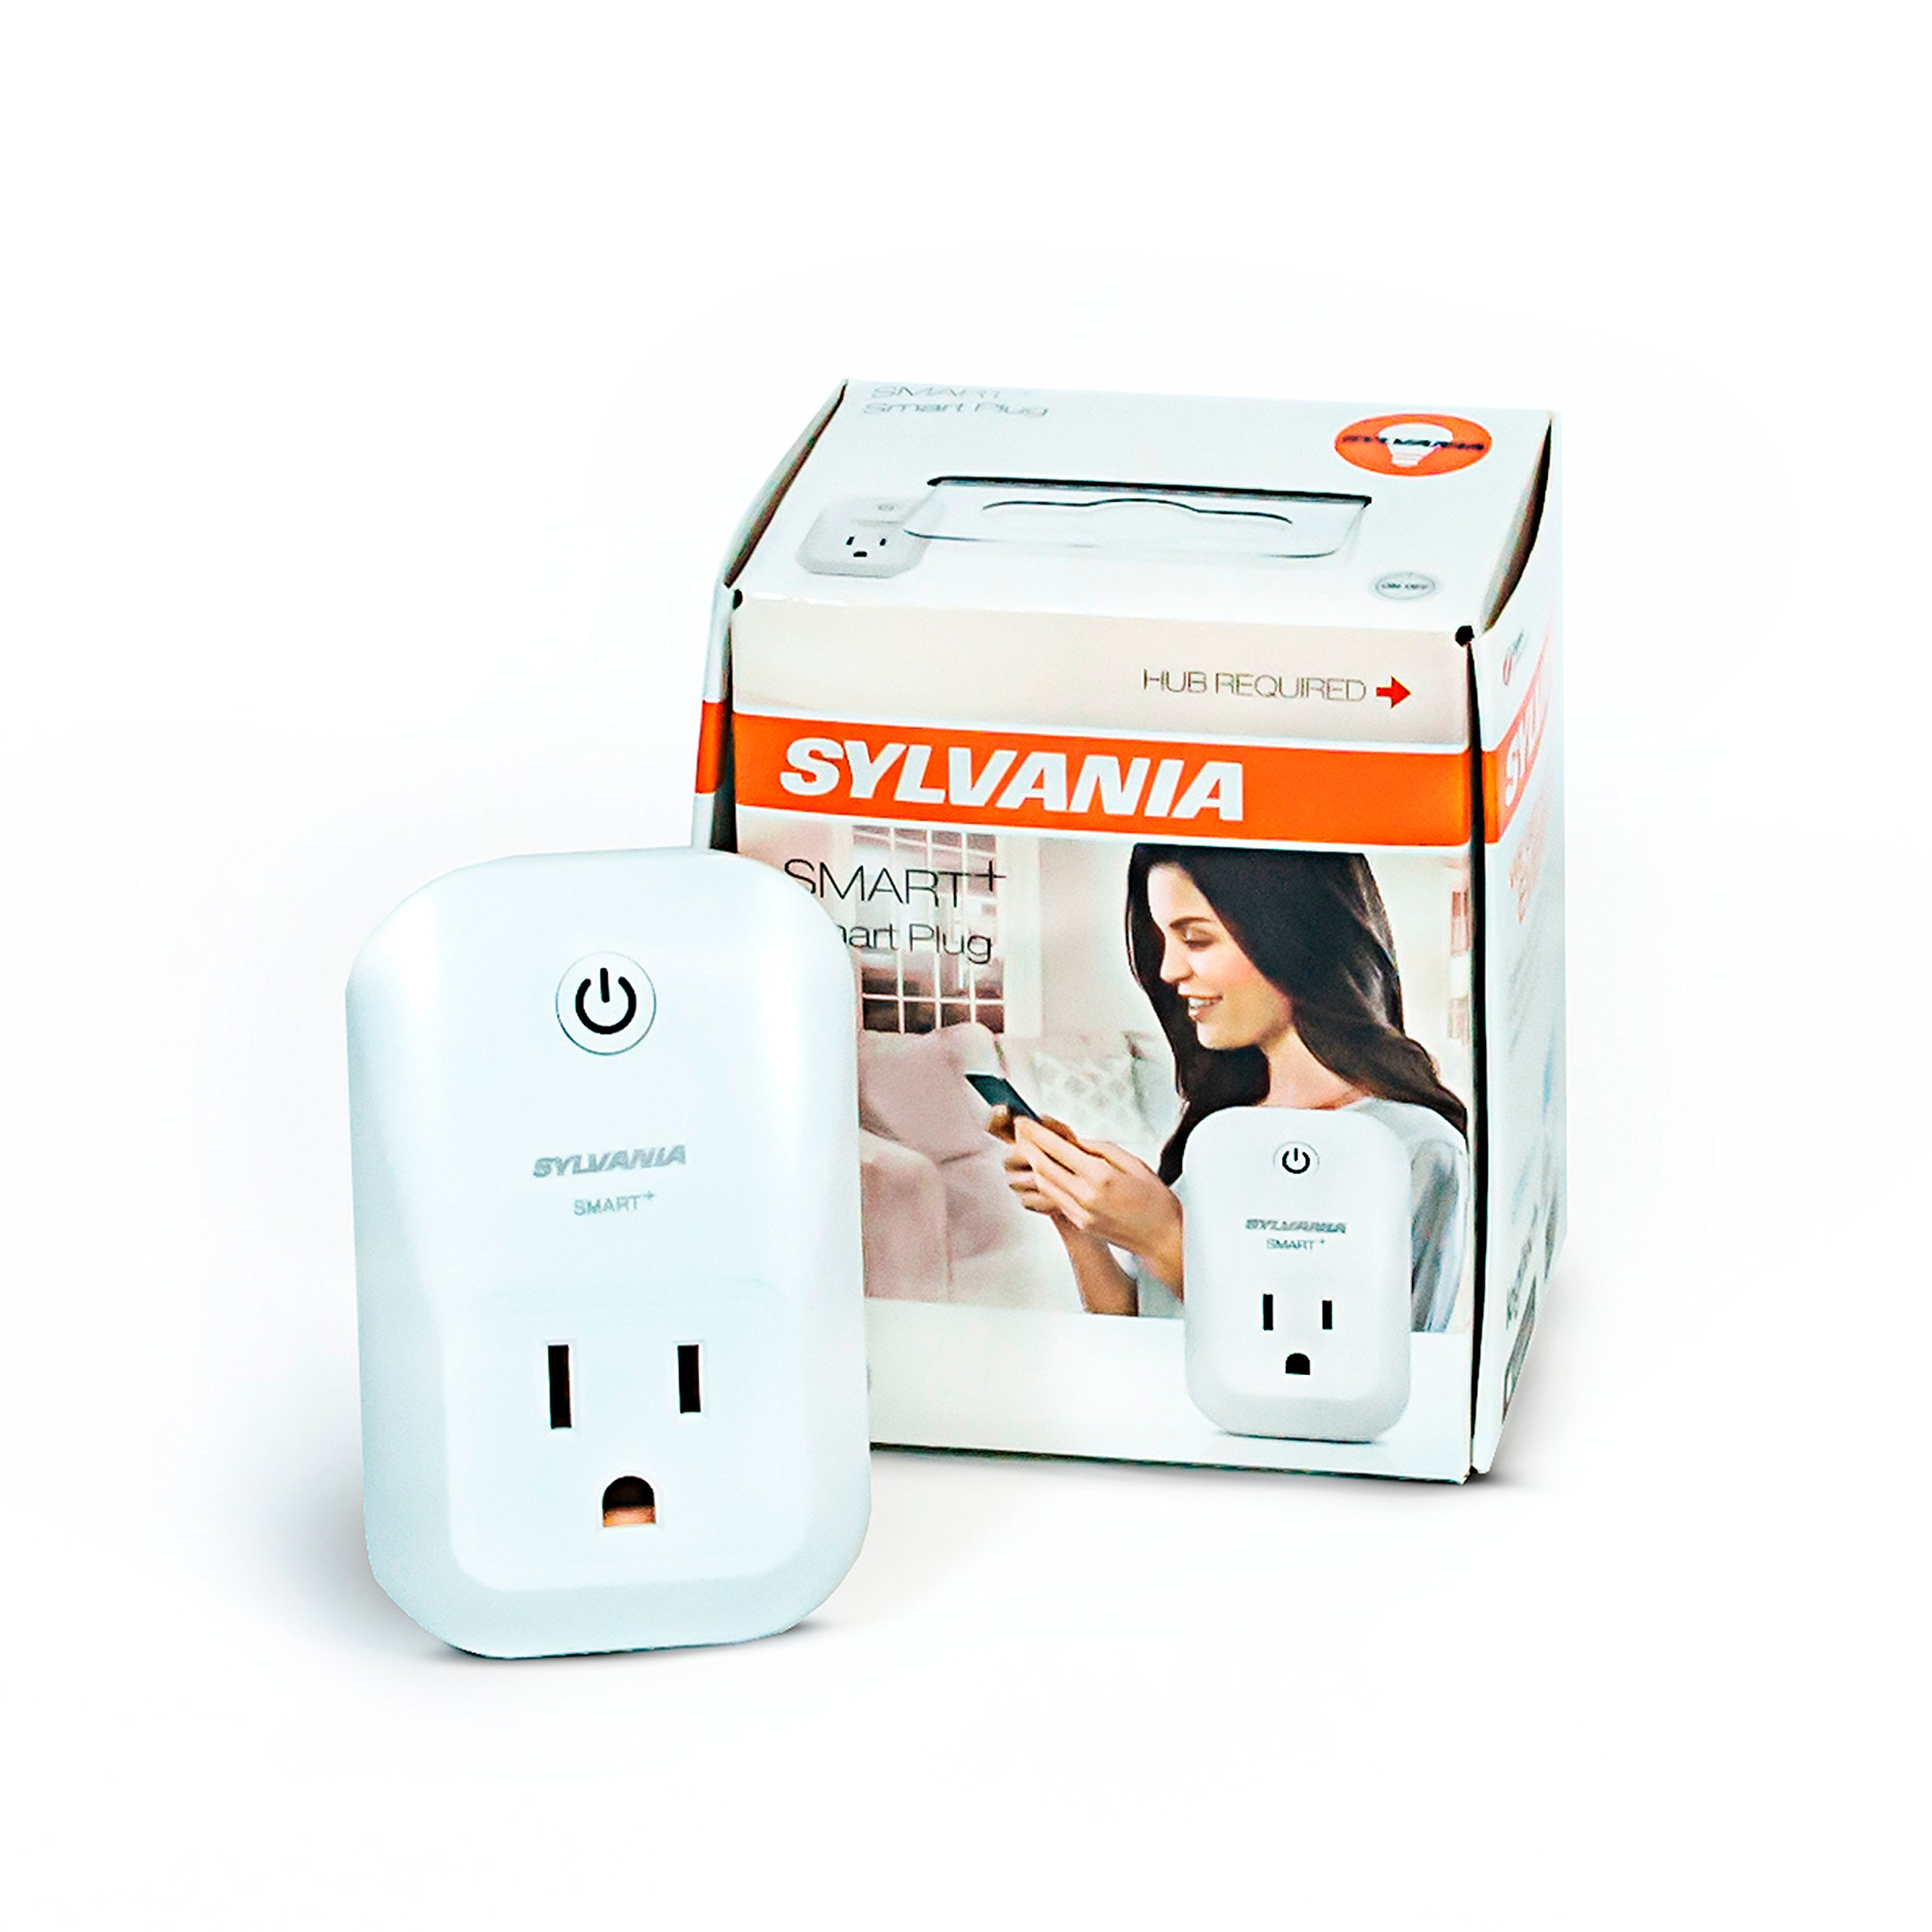 SYLVANIA SMART+ ZigBee Indoor Smart Plug, Works with SmartThings, Wink, and Amazon Echo Plus, Hub Needed for Amazon Alexa and the Google Assistant